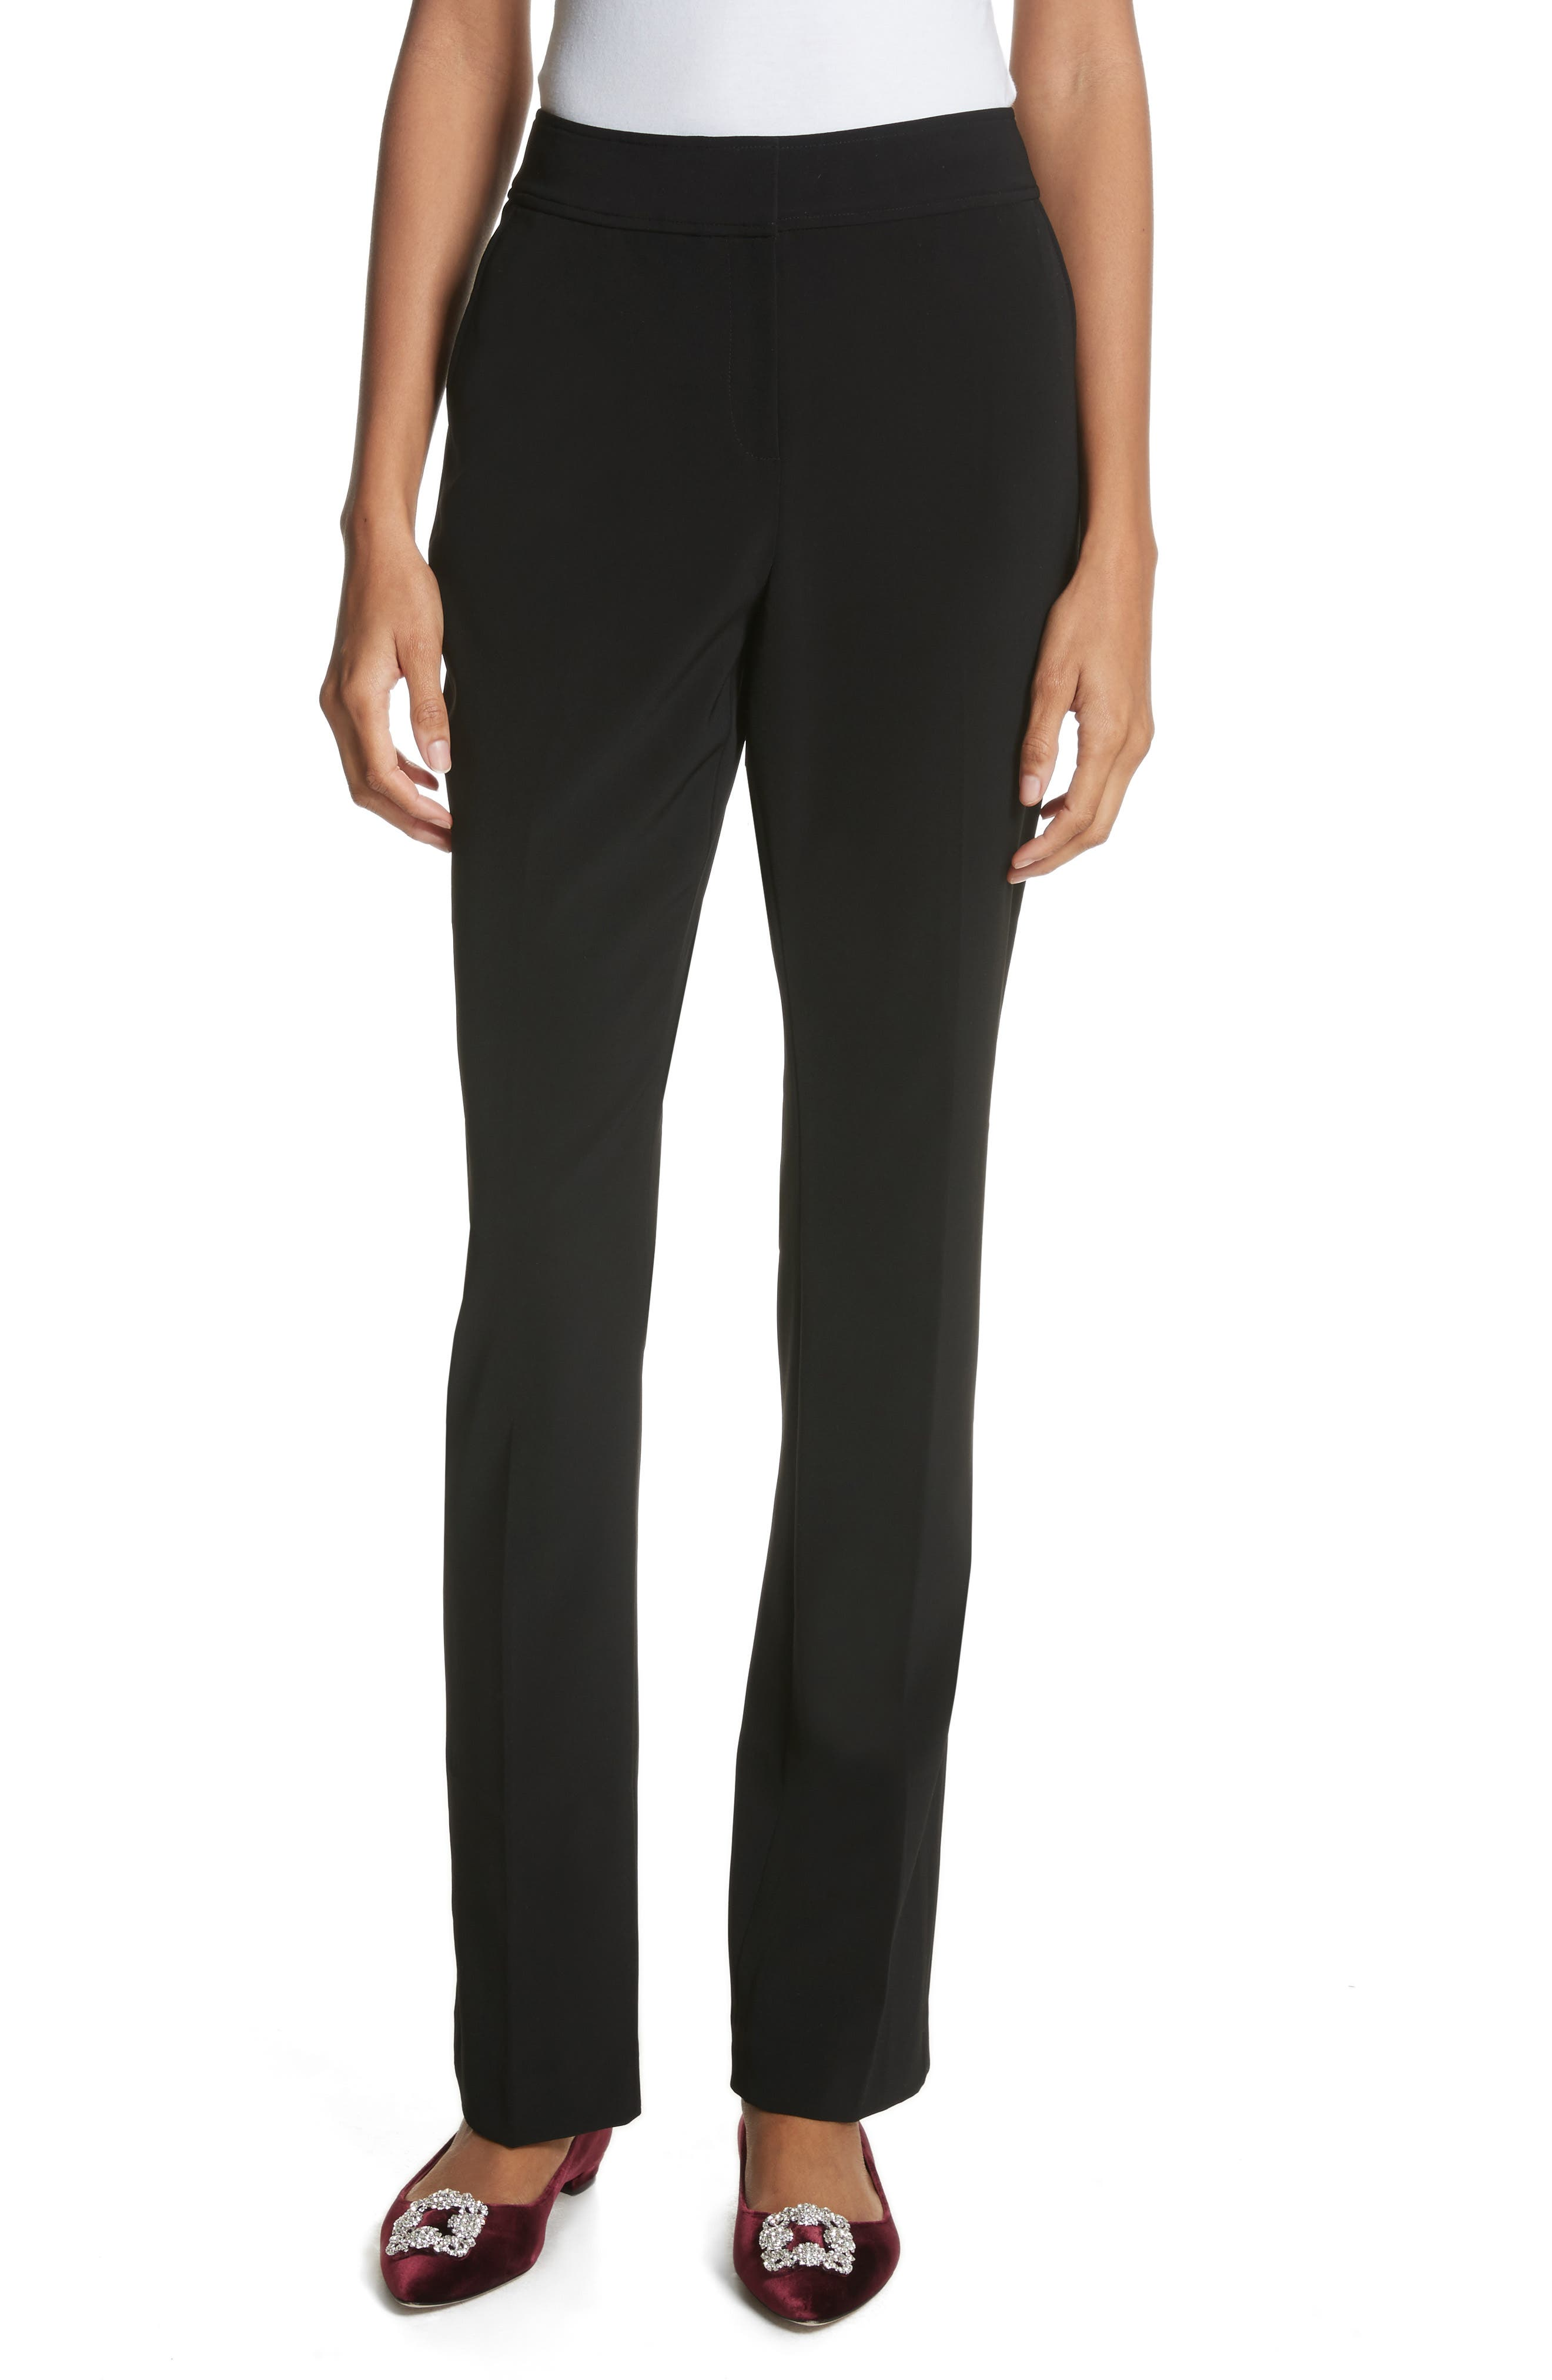 Yulit High Waist Trousers,                         Main,                         color, Black